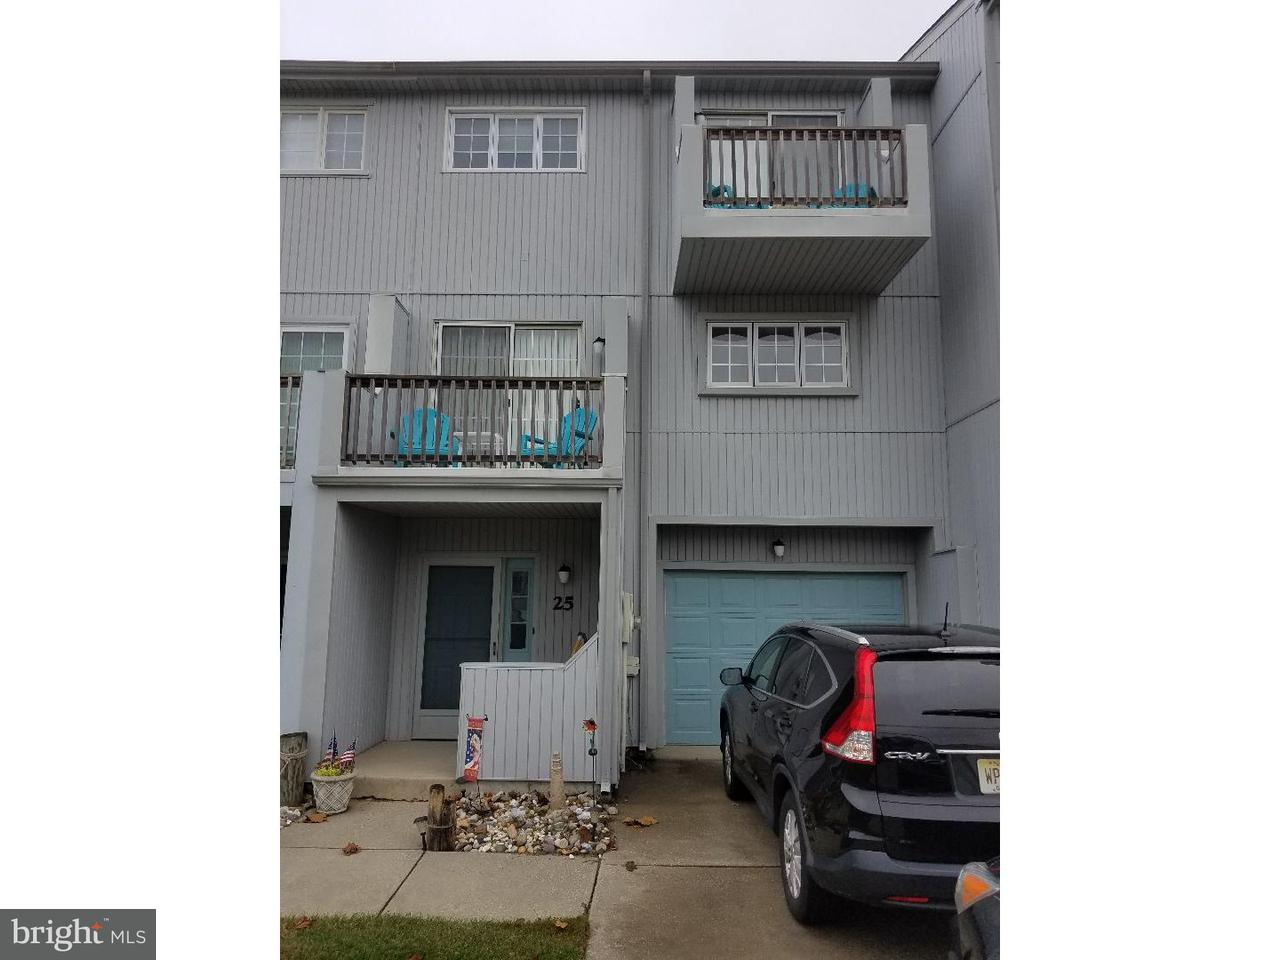 Townhouse for Sale at 25 SAILFISH Drive Brigantine, New Jersey 08203 United States